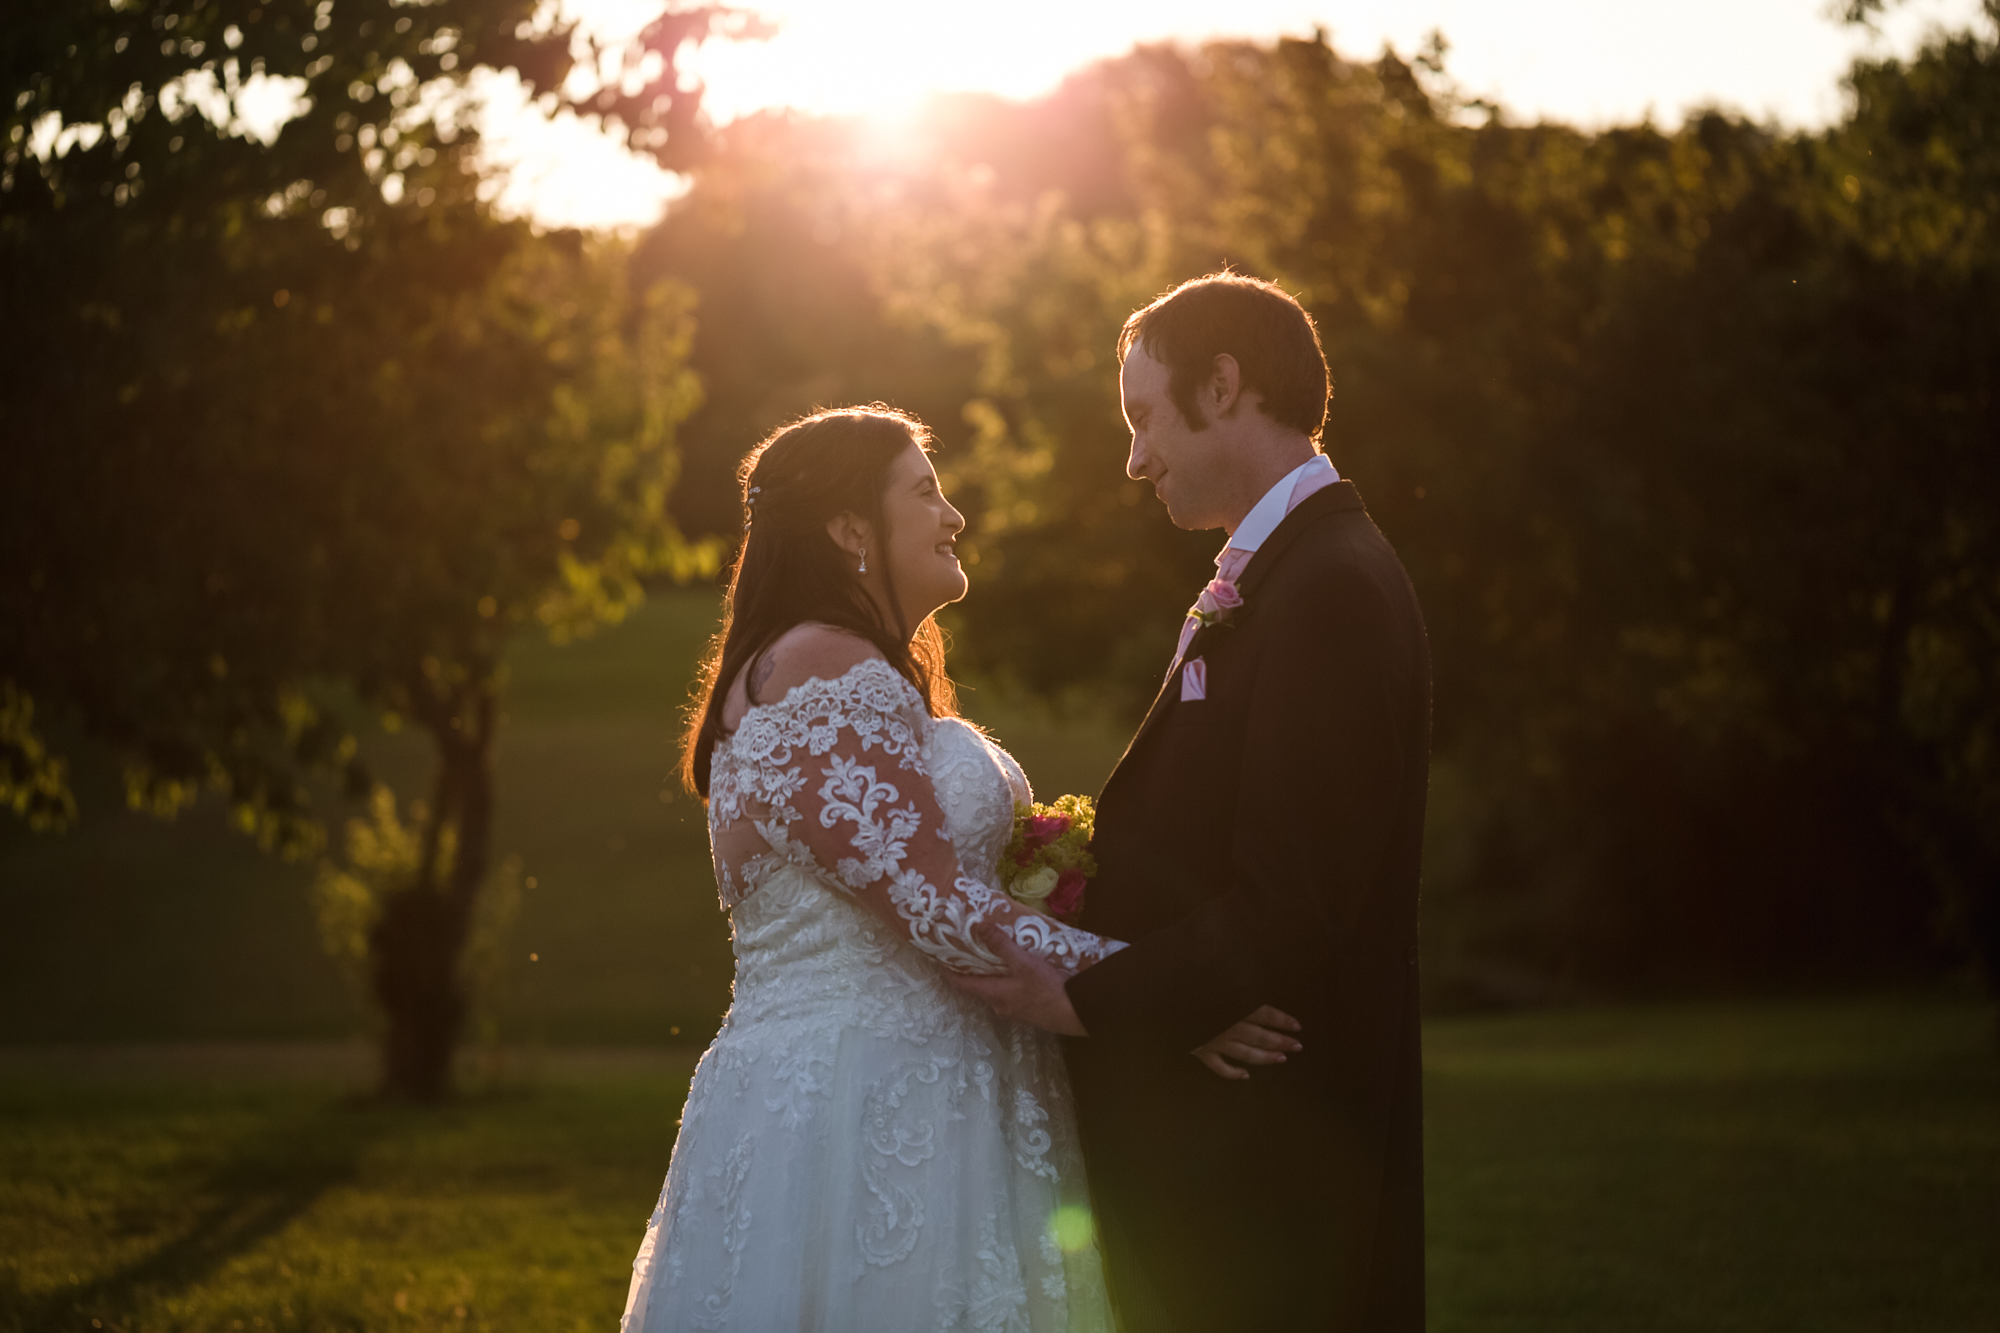 Bride and groom sunset portraits at Ridgeway golf club, Thornhill, Caerphilly Mountain